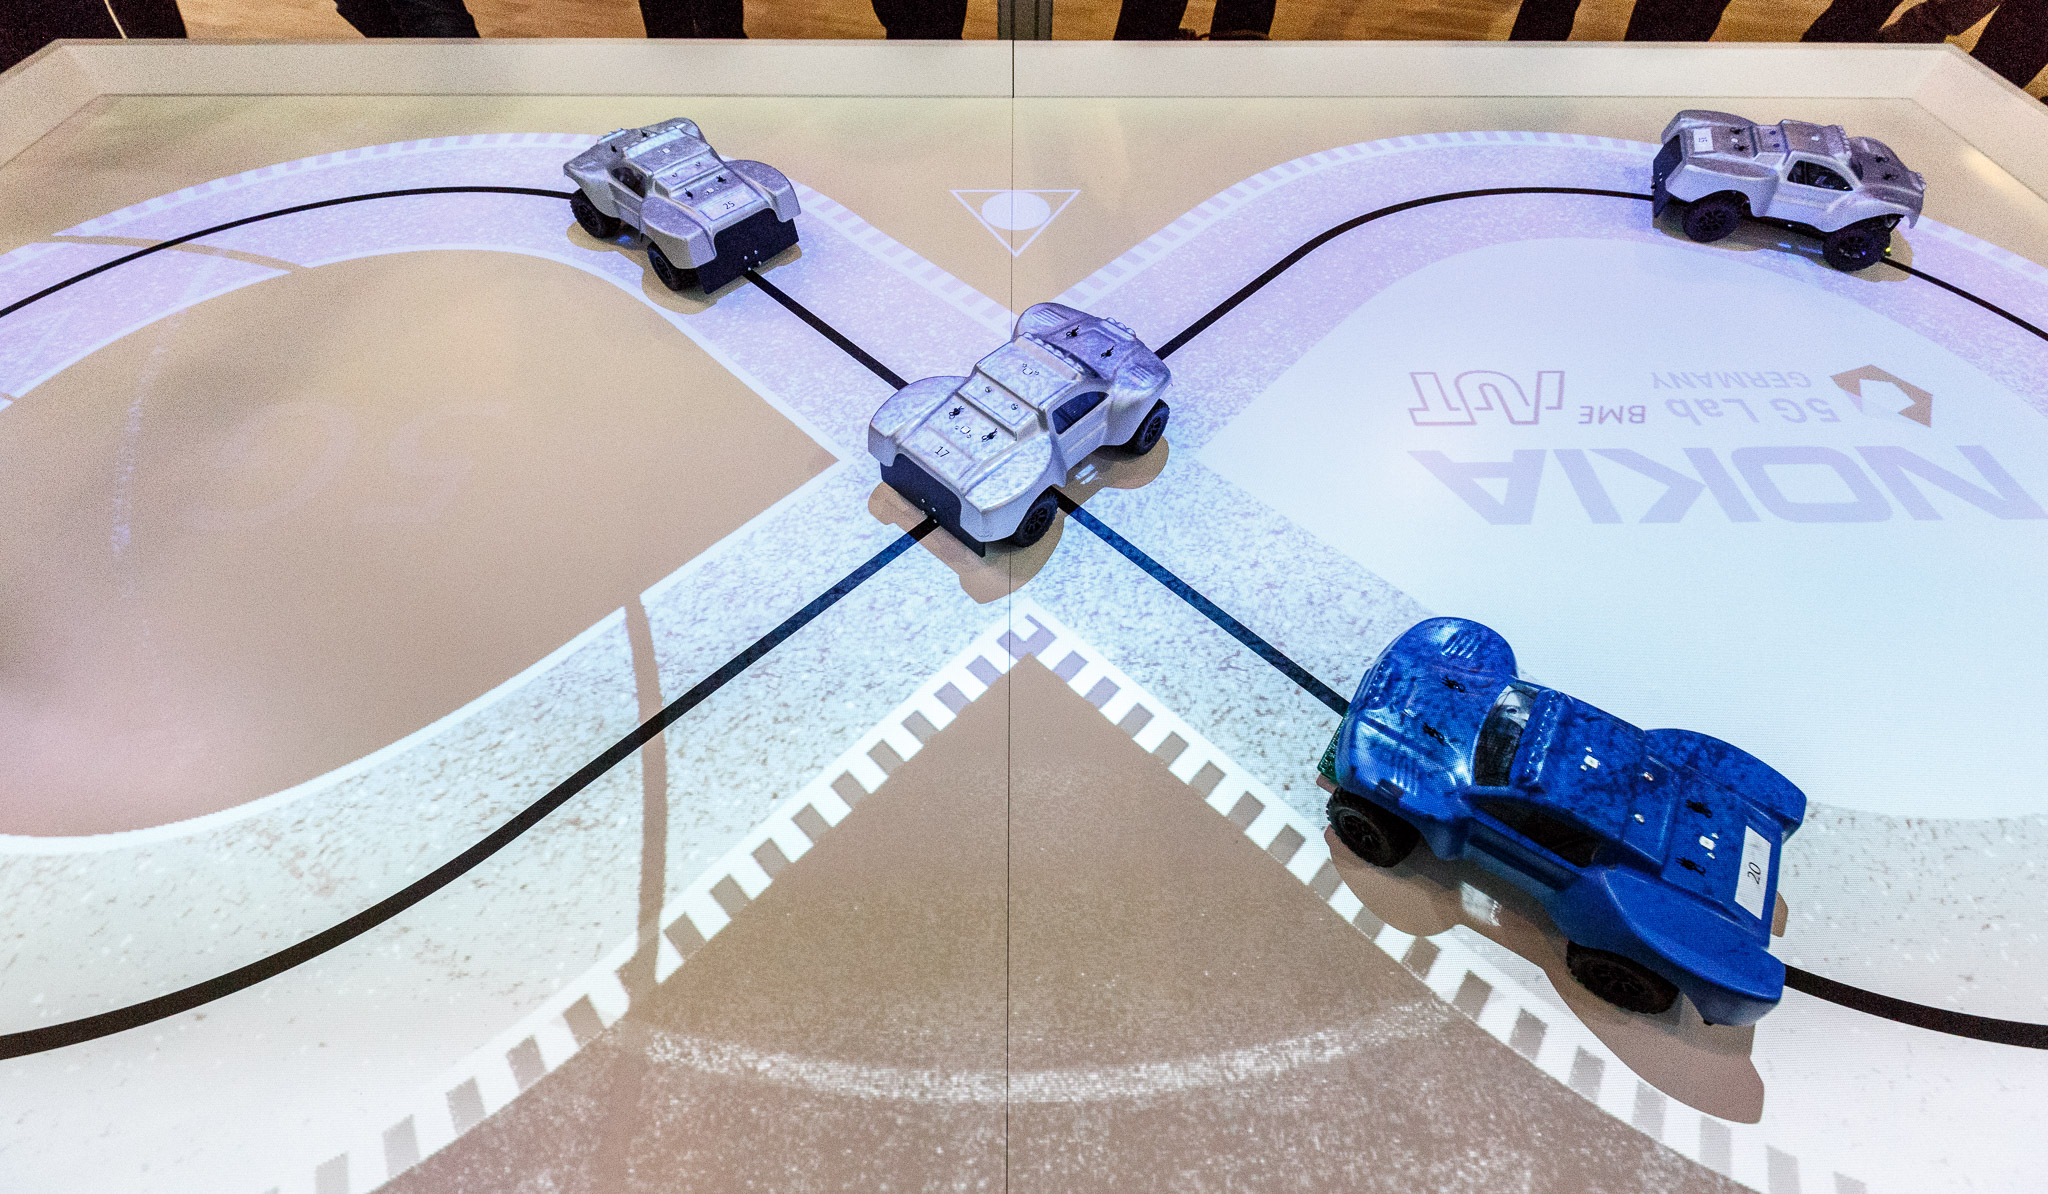 Nokia​ demonstrates how 5G networks are fast enough to coordinate toy cars whizzing through an intersection without colliding.